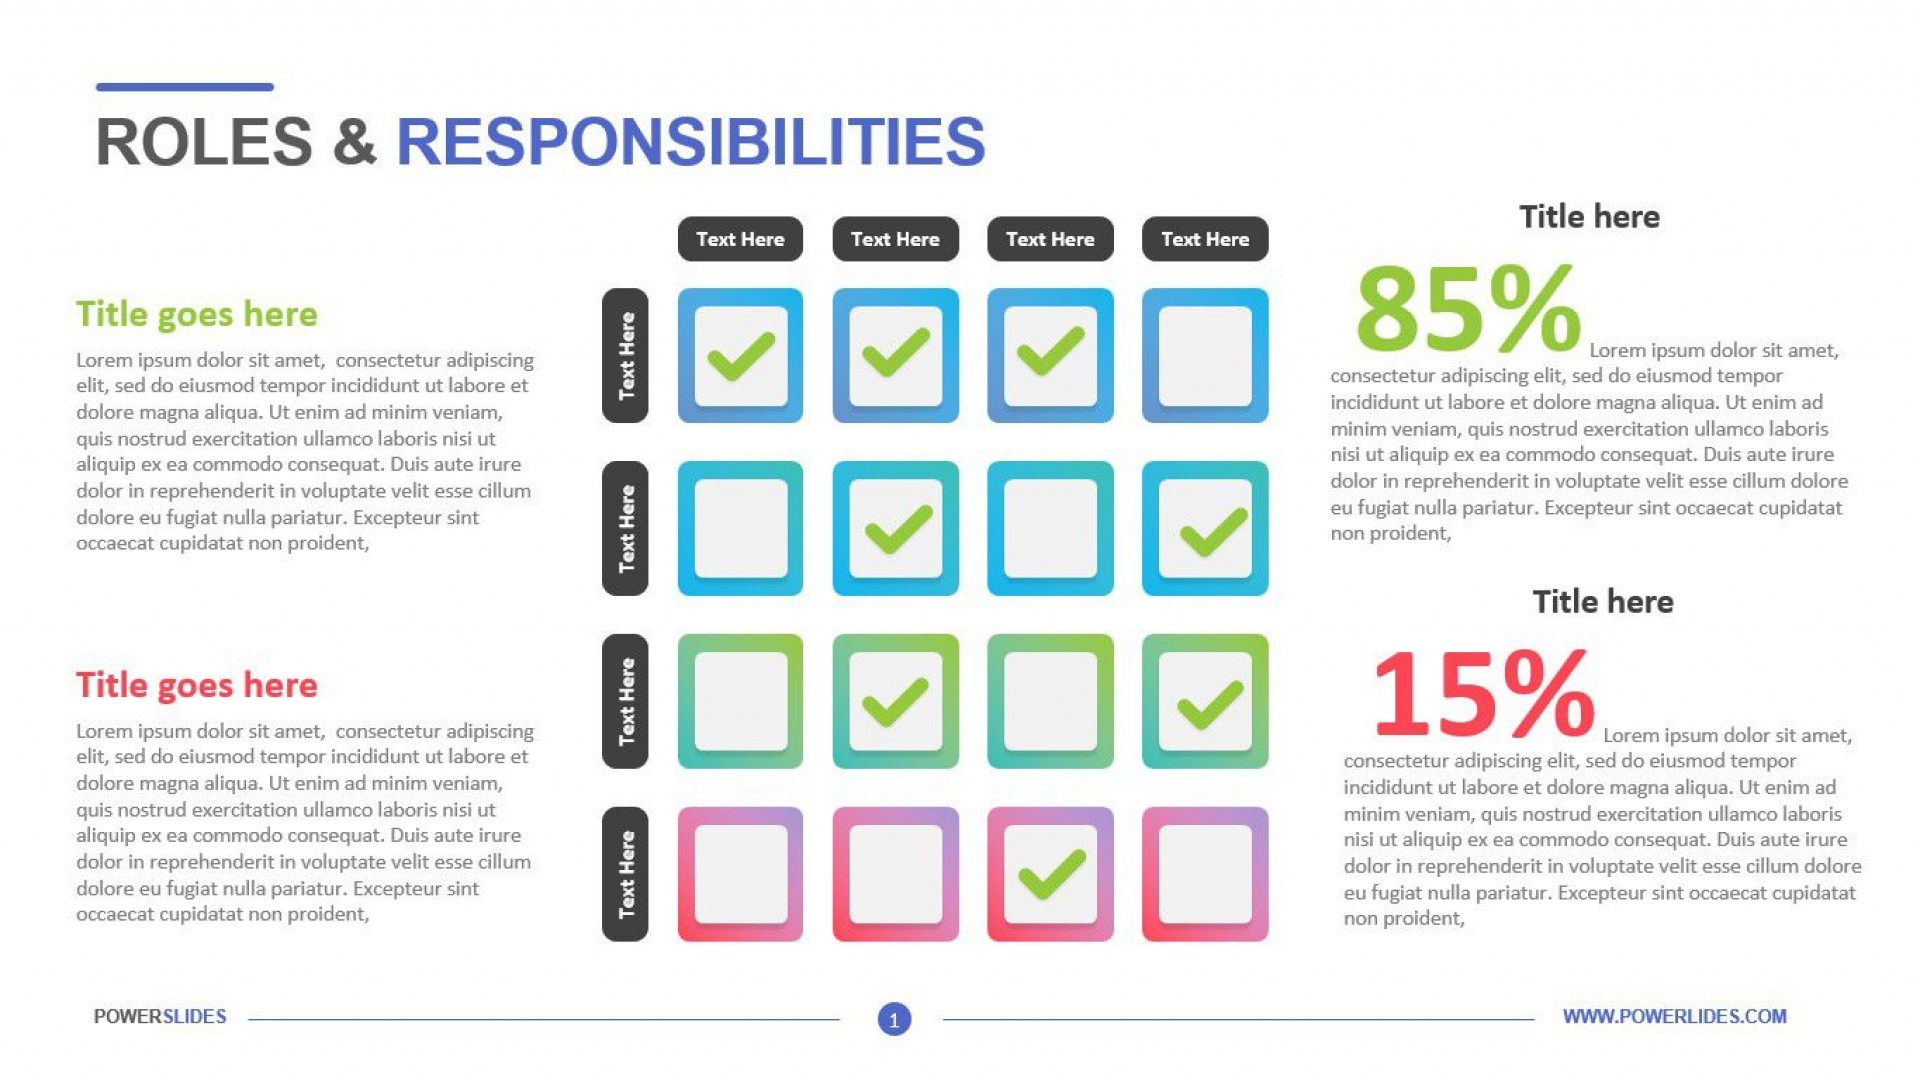 008 Archaicawful Role And Responsibilitie Matrix Template Powerpoint Highest Clarity 1920